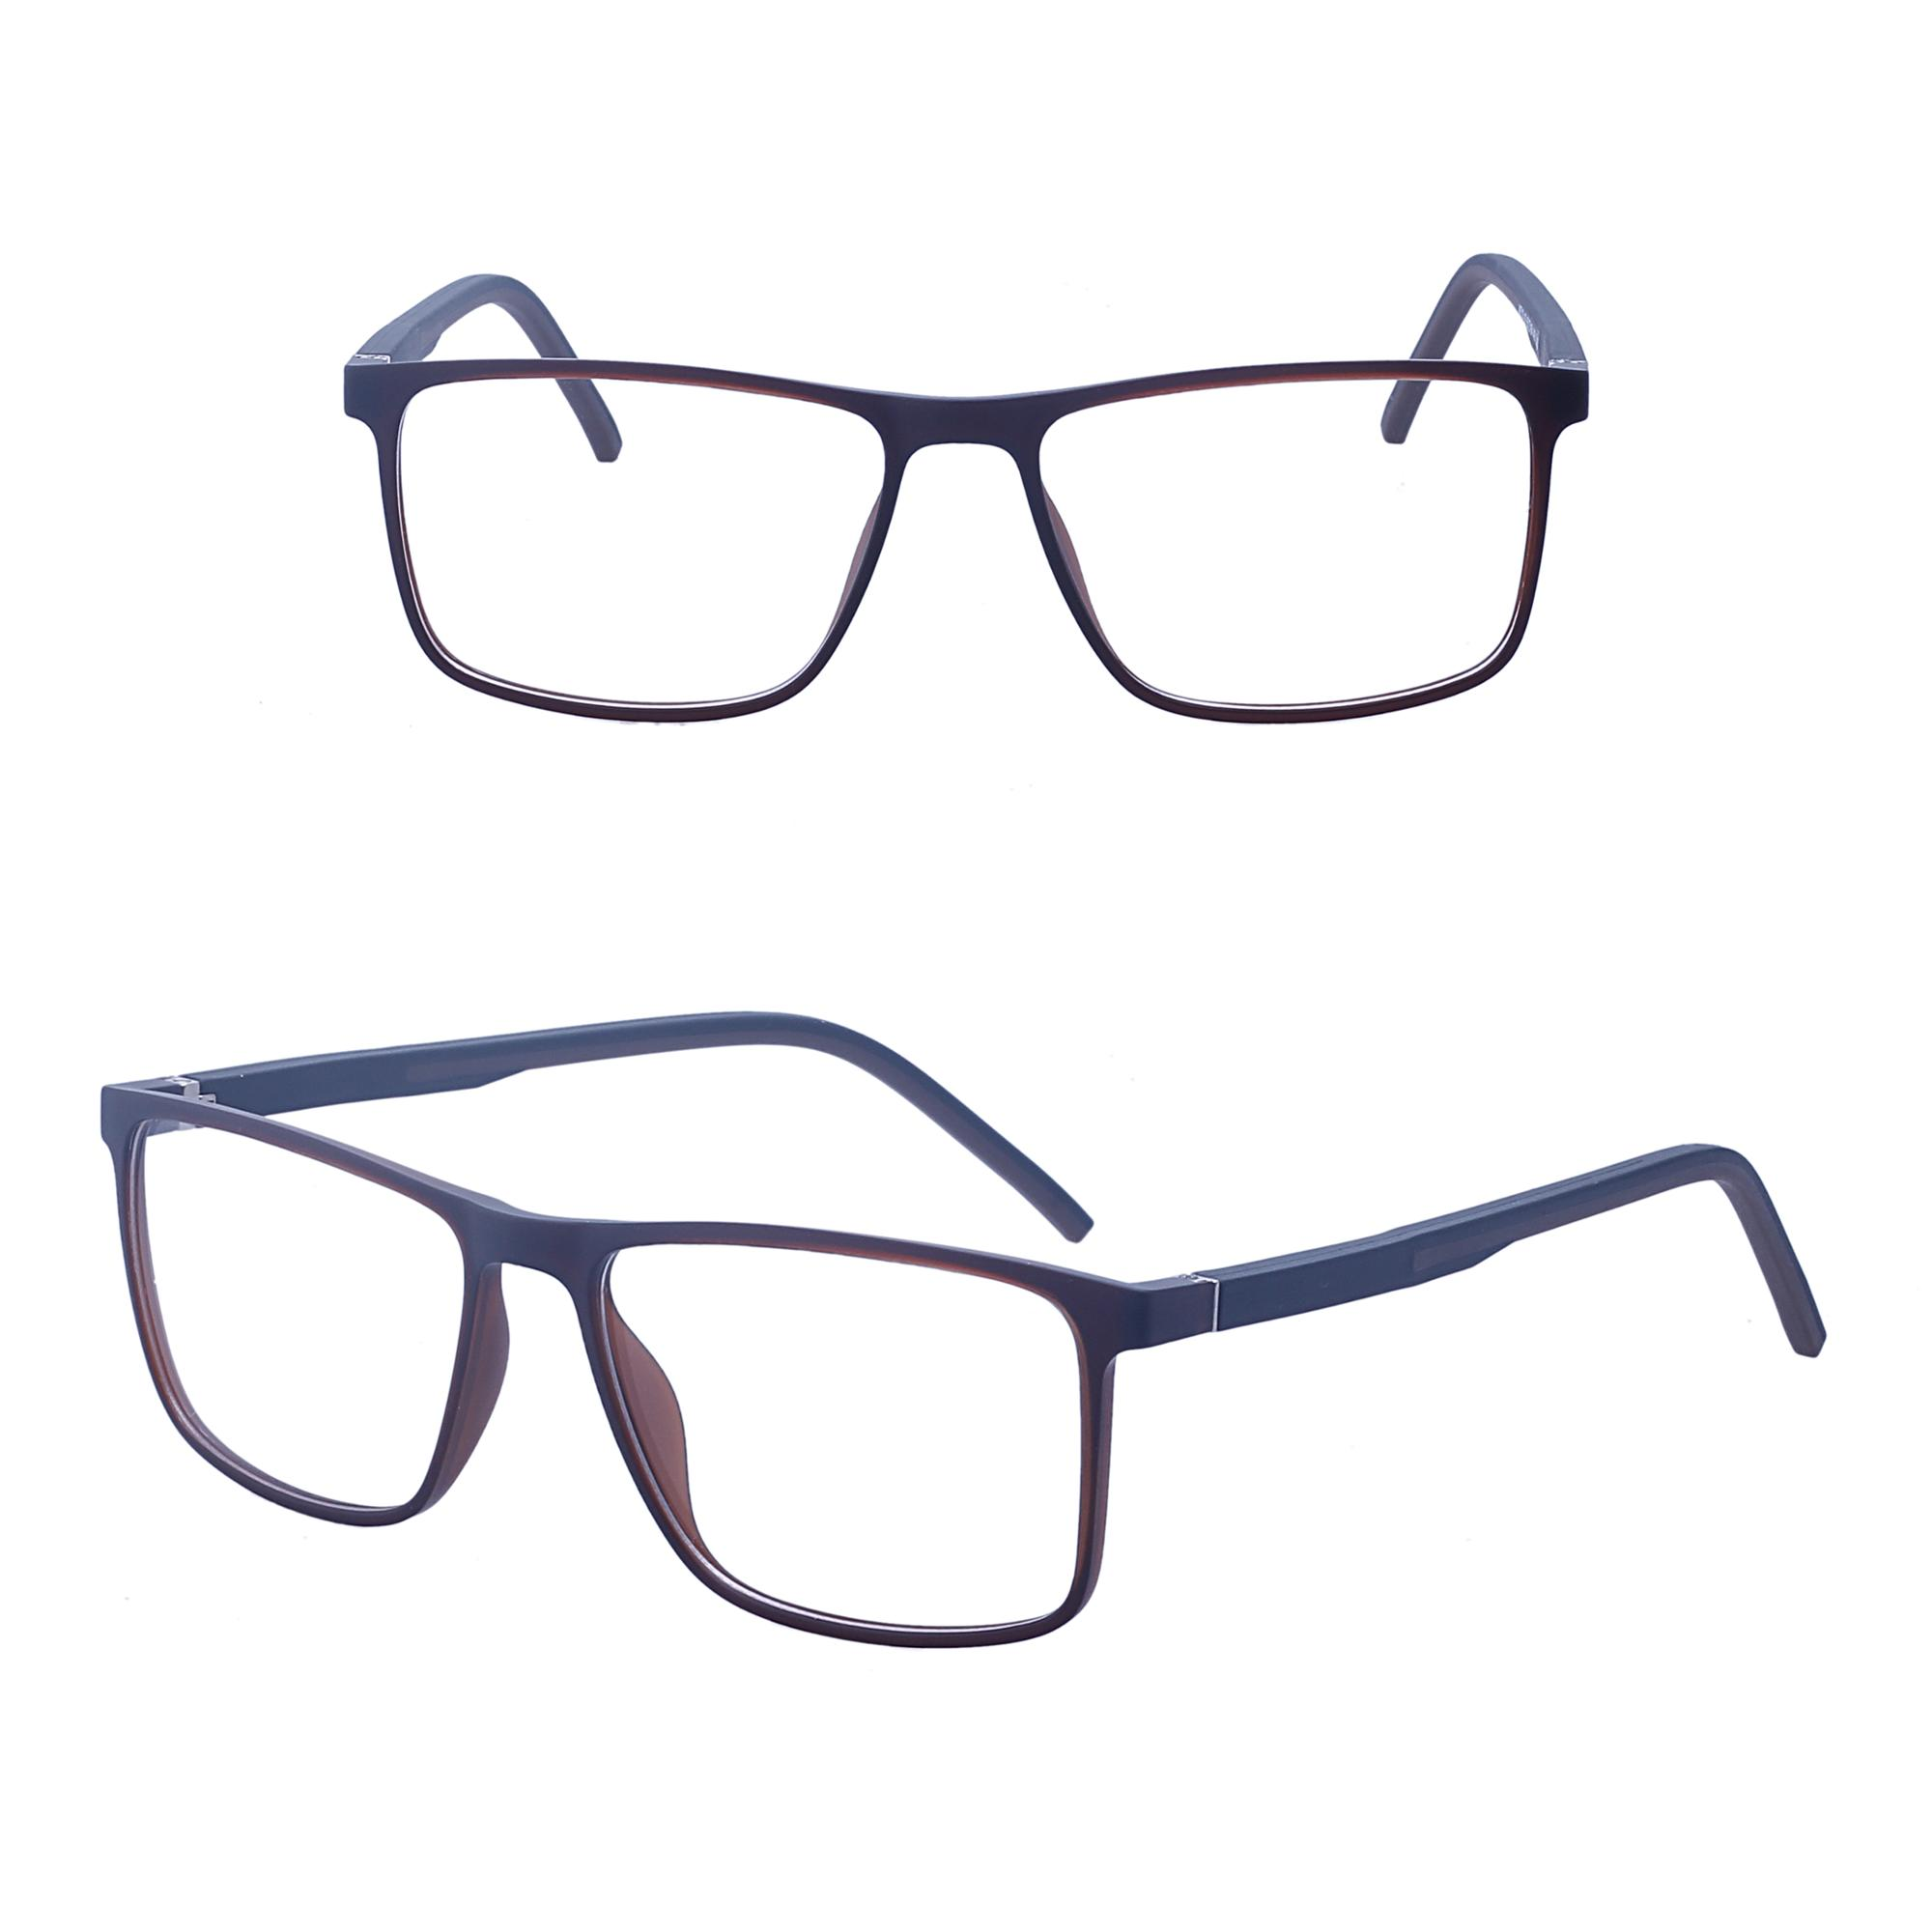 new product ideas 2018 cheap TR90 classic promotional optical eyewear eyeglasses frames in stock